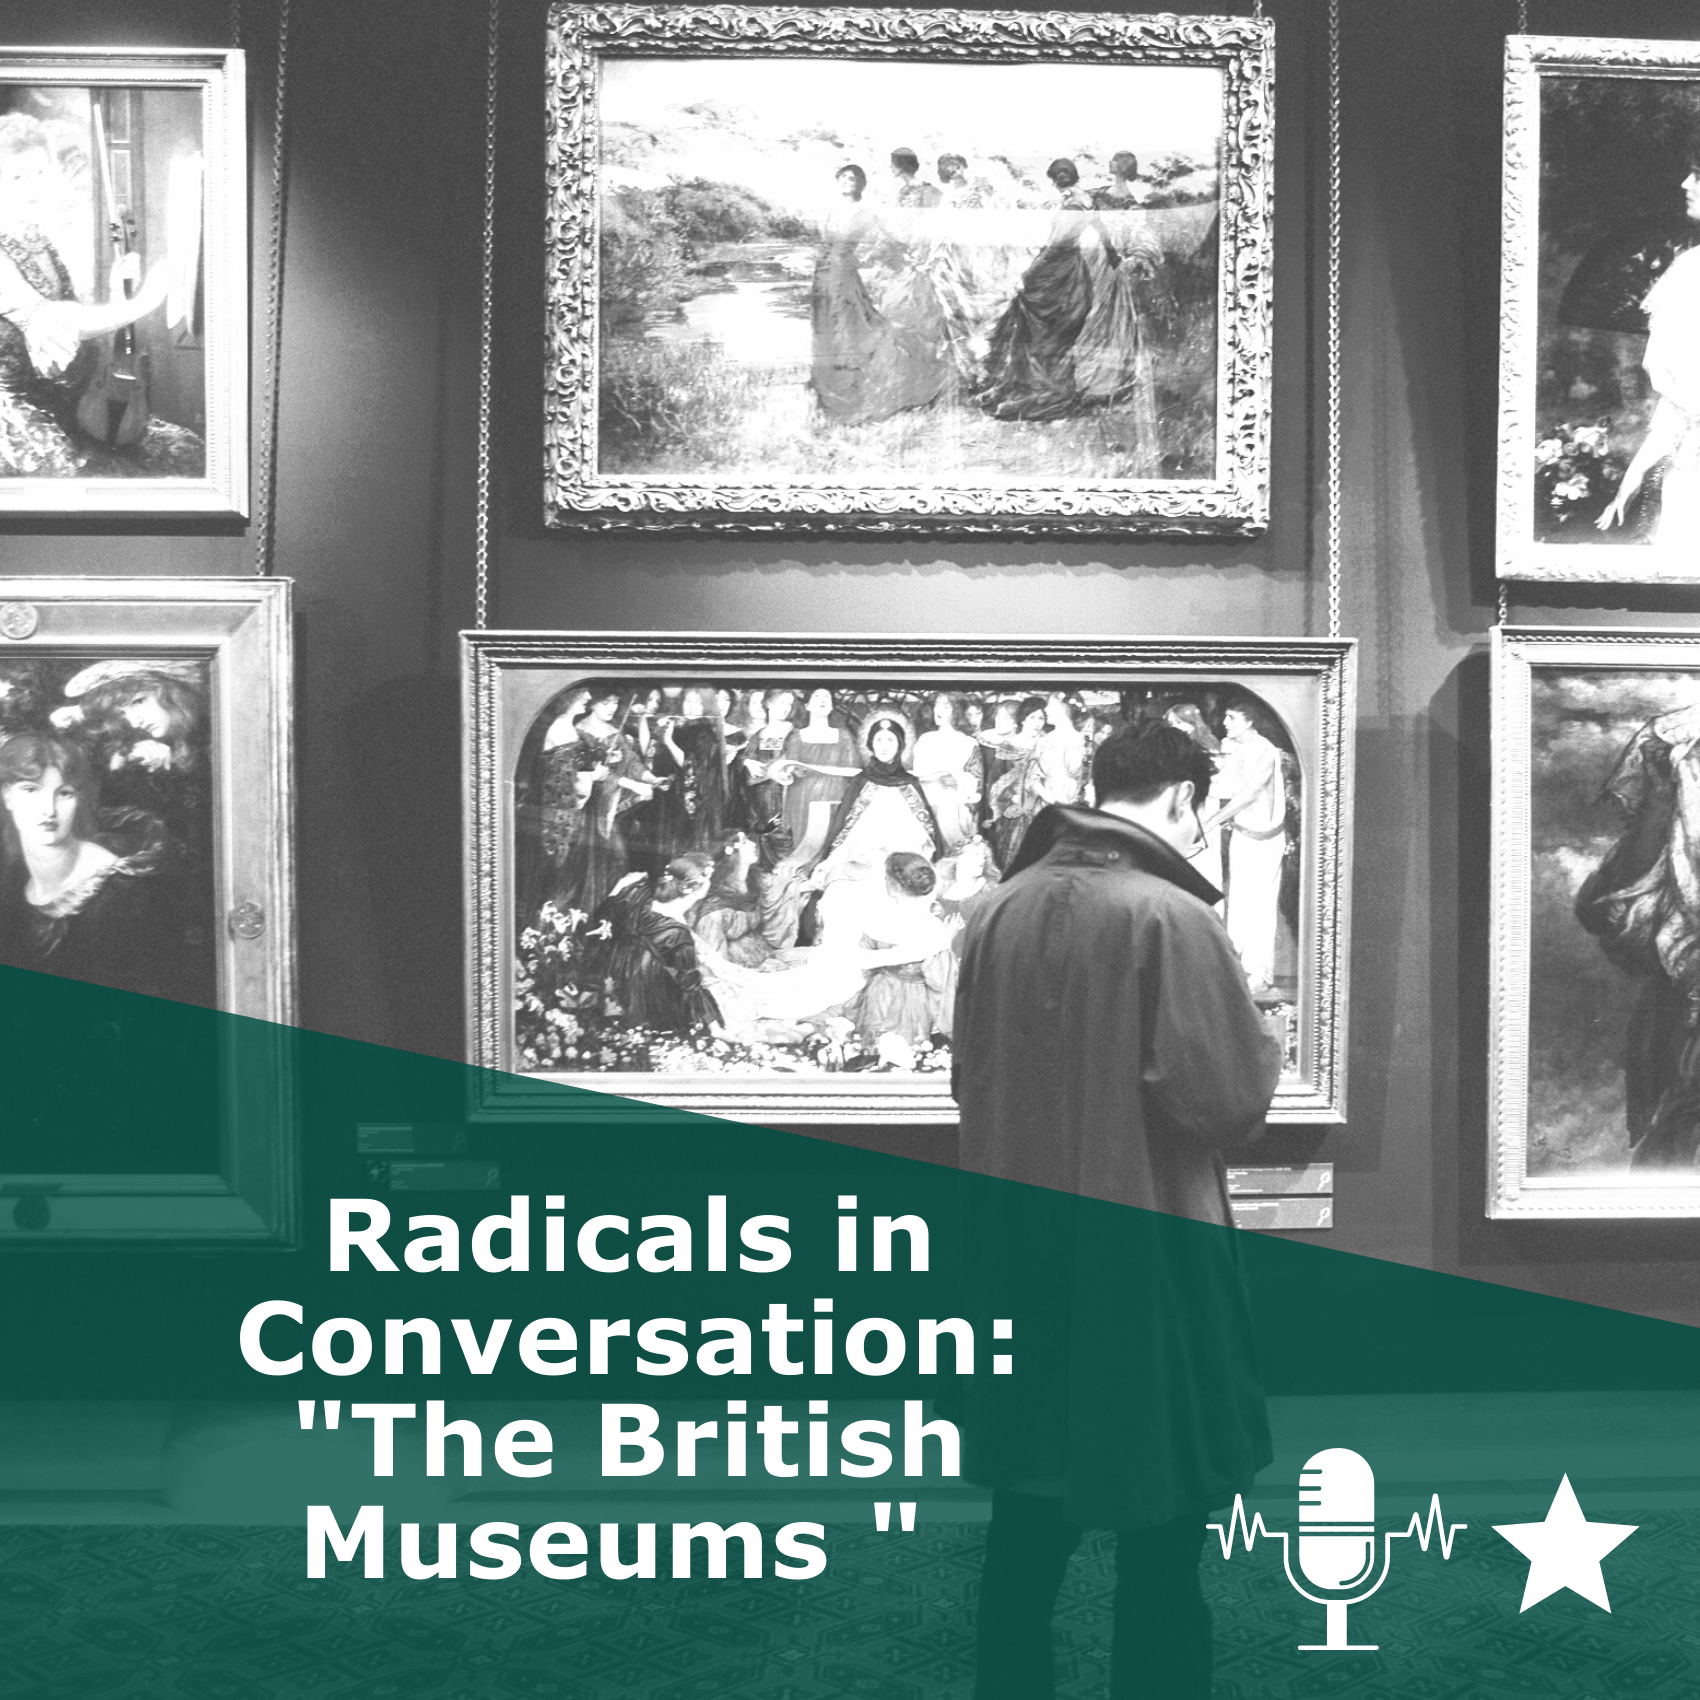 Picture of a museum in black and white. Title 'Radicals in Conversation, The British Museums | Pluto Press'. It is a podcast rated 1 star.